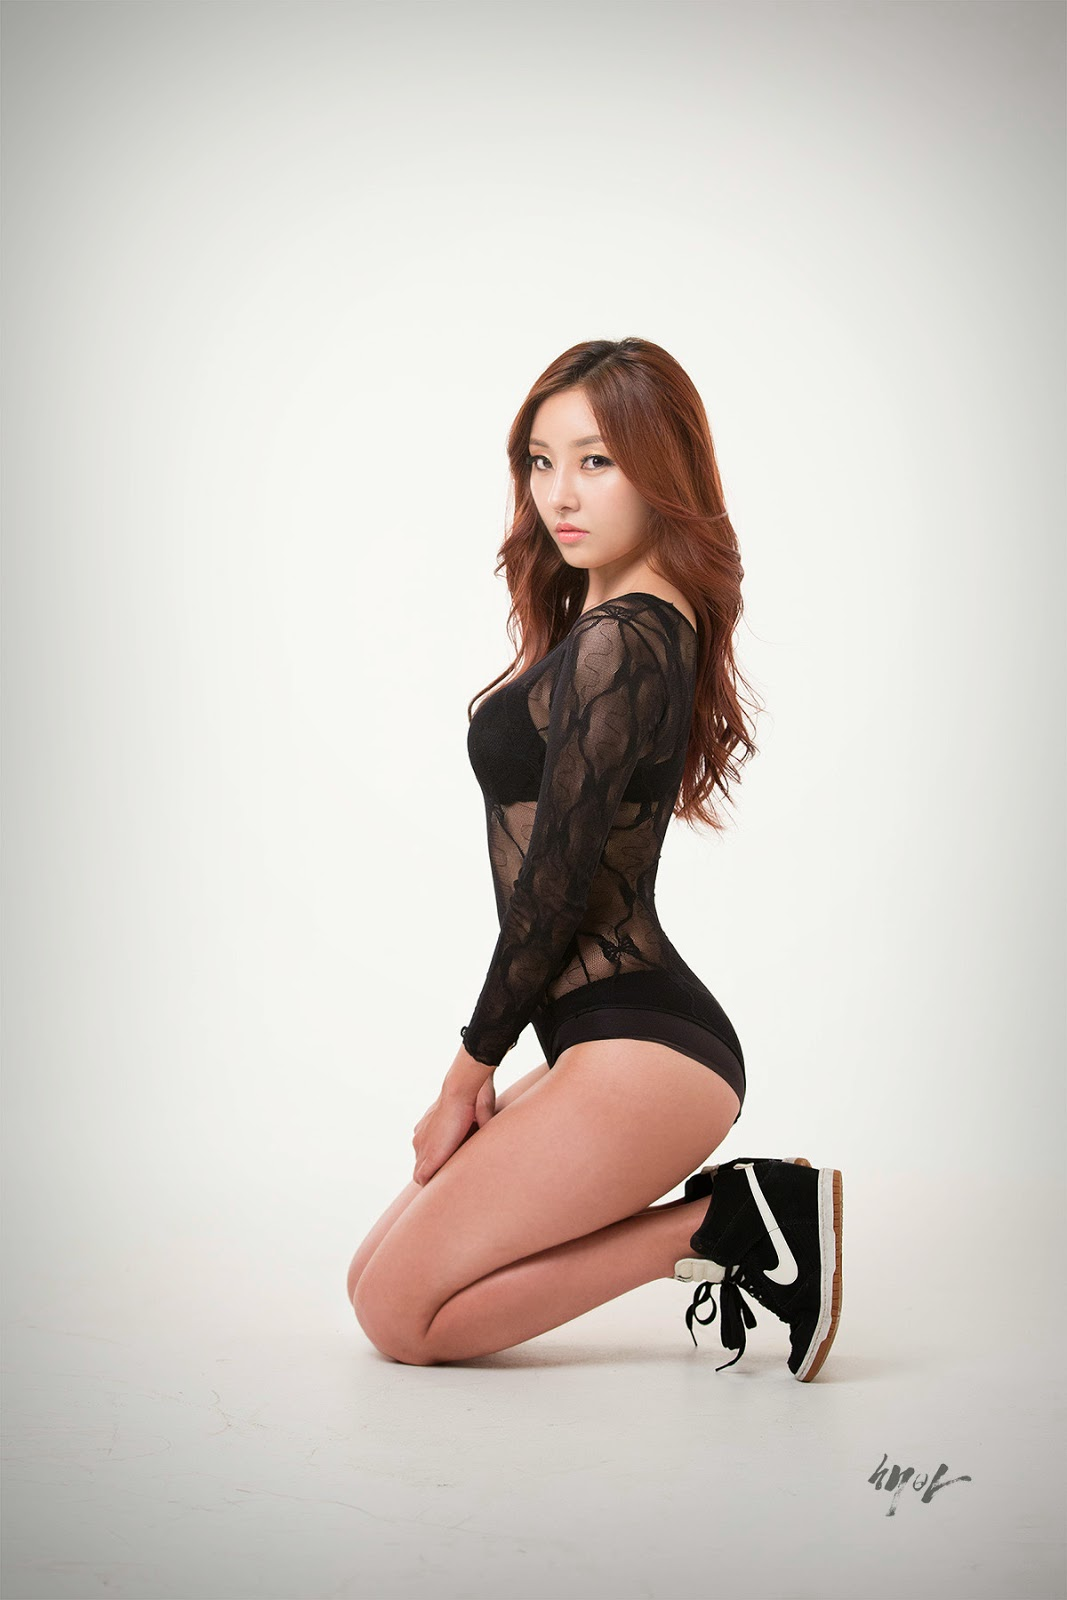 2 Just the usual hot stuff from Lee Hyun Ji - very cute asian girl-girlcute4u.blogspot.com